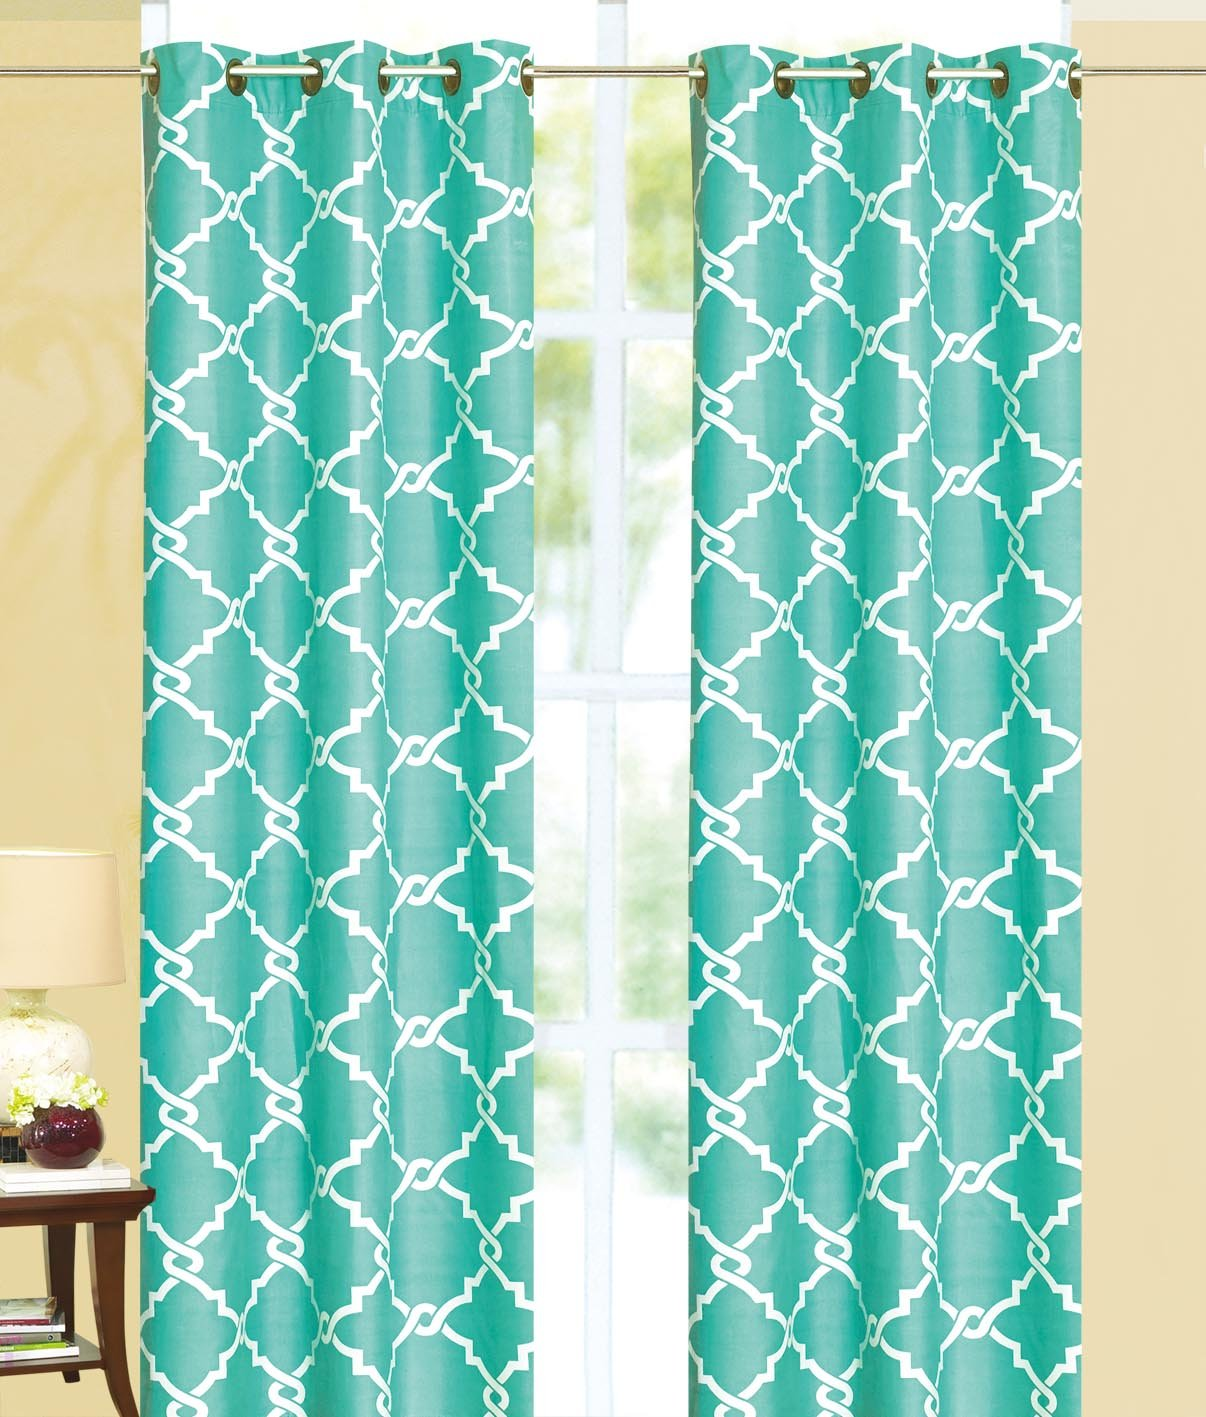 Ace 21 Geometric Modern Print Insulated 100% Thermal Blackout Window Grommet Curtain Panel